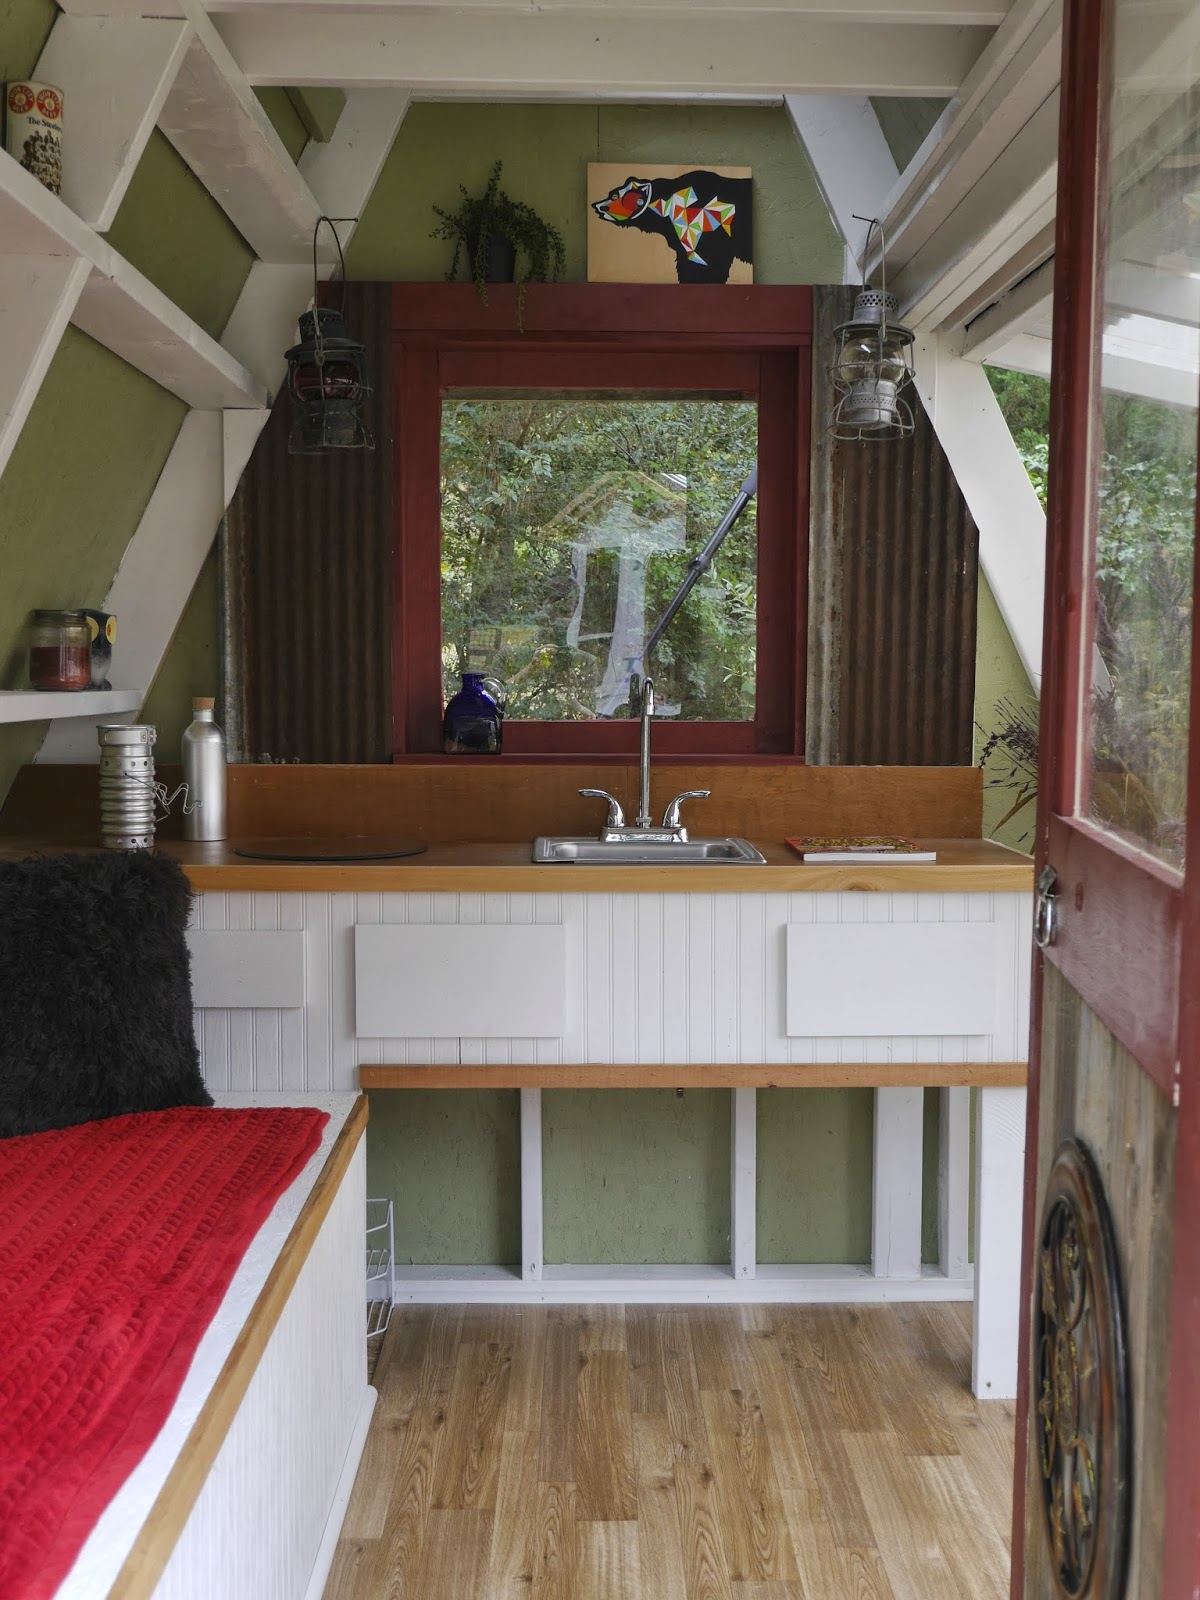 check out this super affordable transforming tiny d i y a frame check out this super affordable transforming tiny d i y a frame house